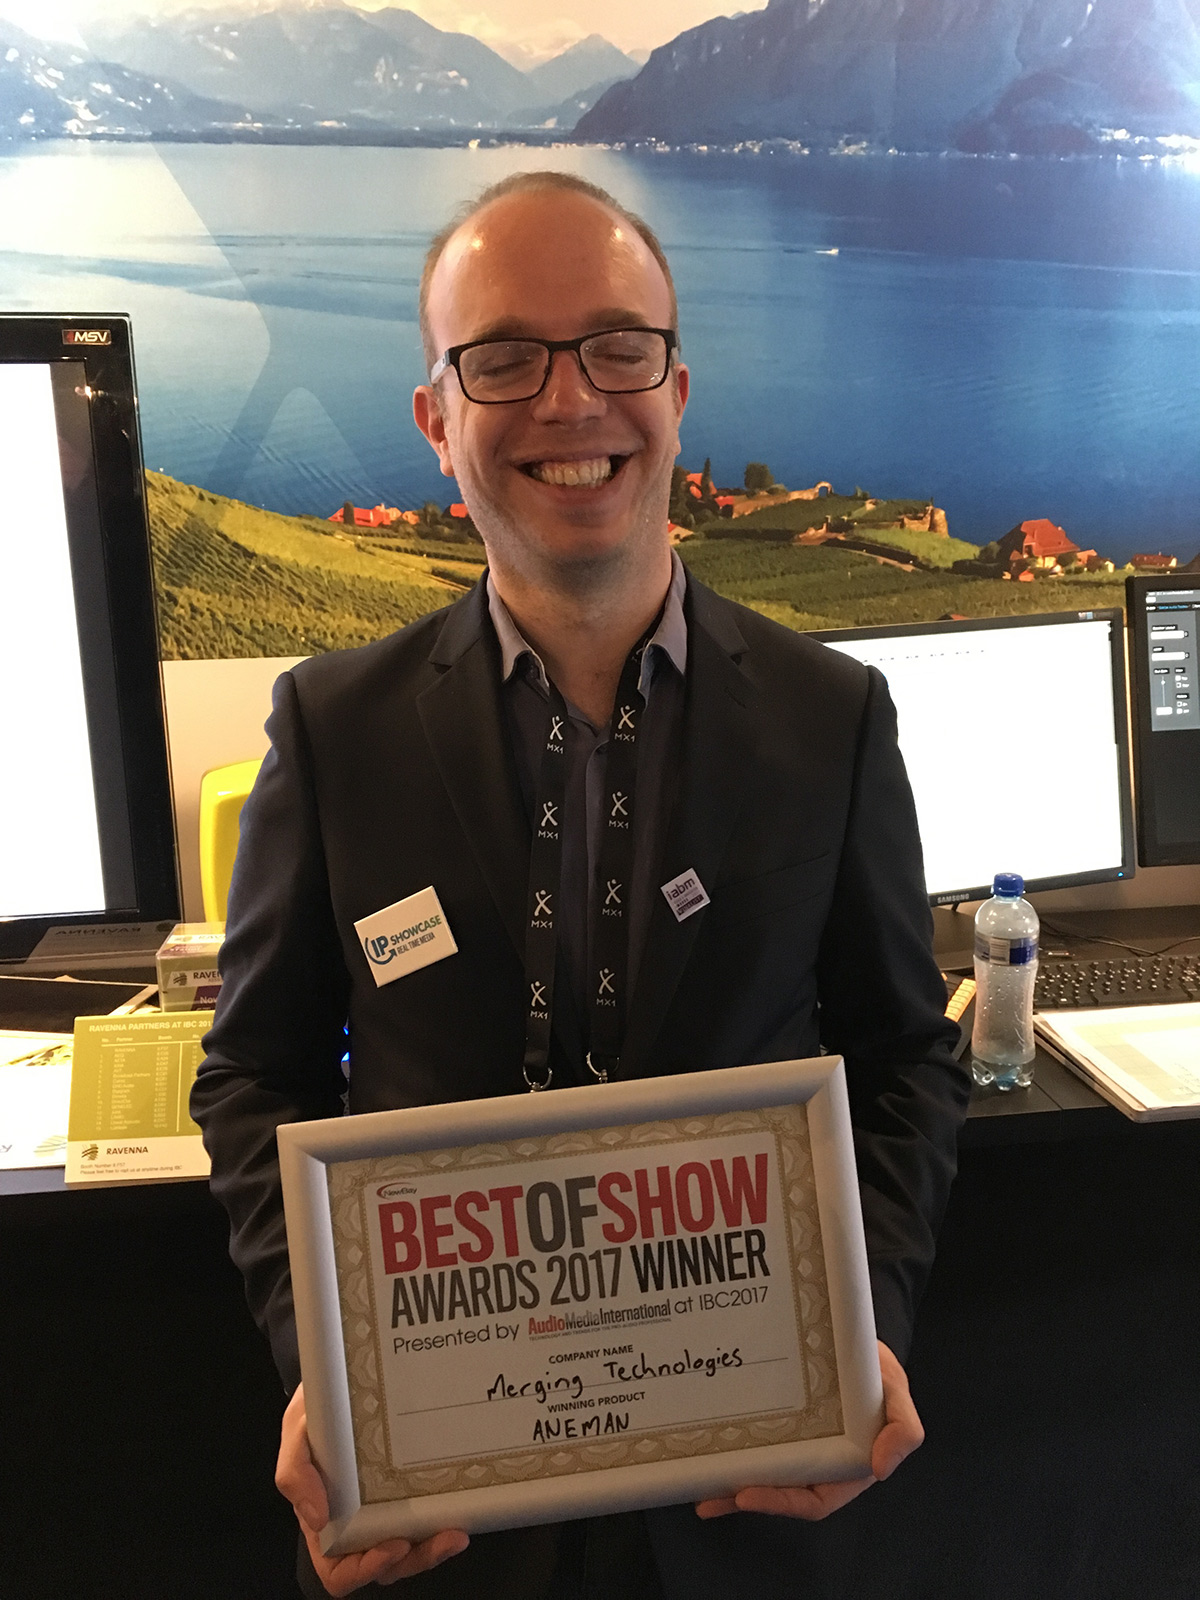 Nicolas Sturmel with Best Of Show award